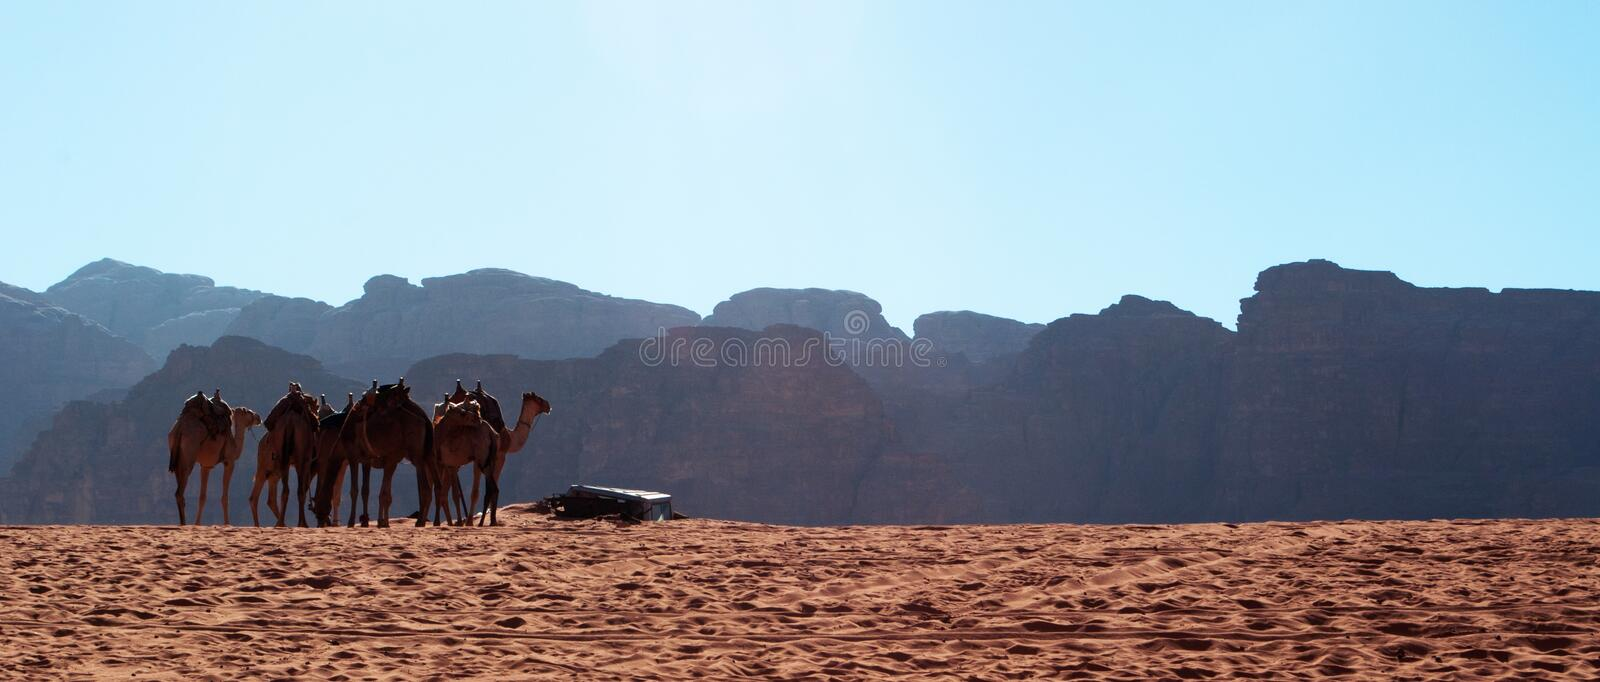 Wadi Rum, camel, camels, dirt road, the Valley of the Moon, Jordan, Middle East, desert, landscape, nature, climate change royalty free stock photo